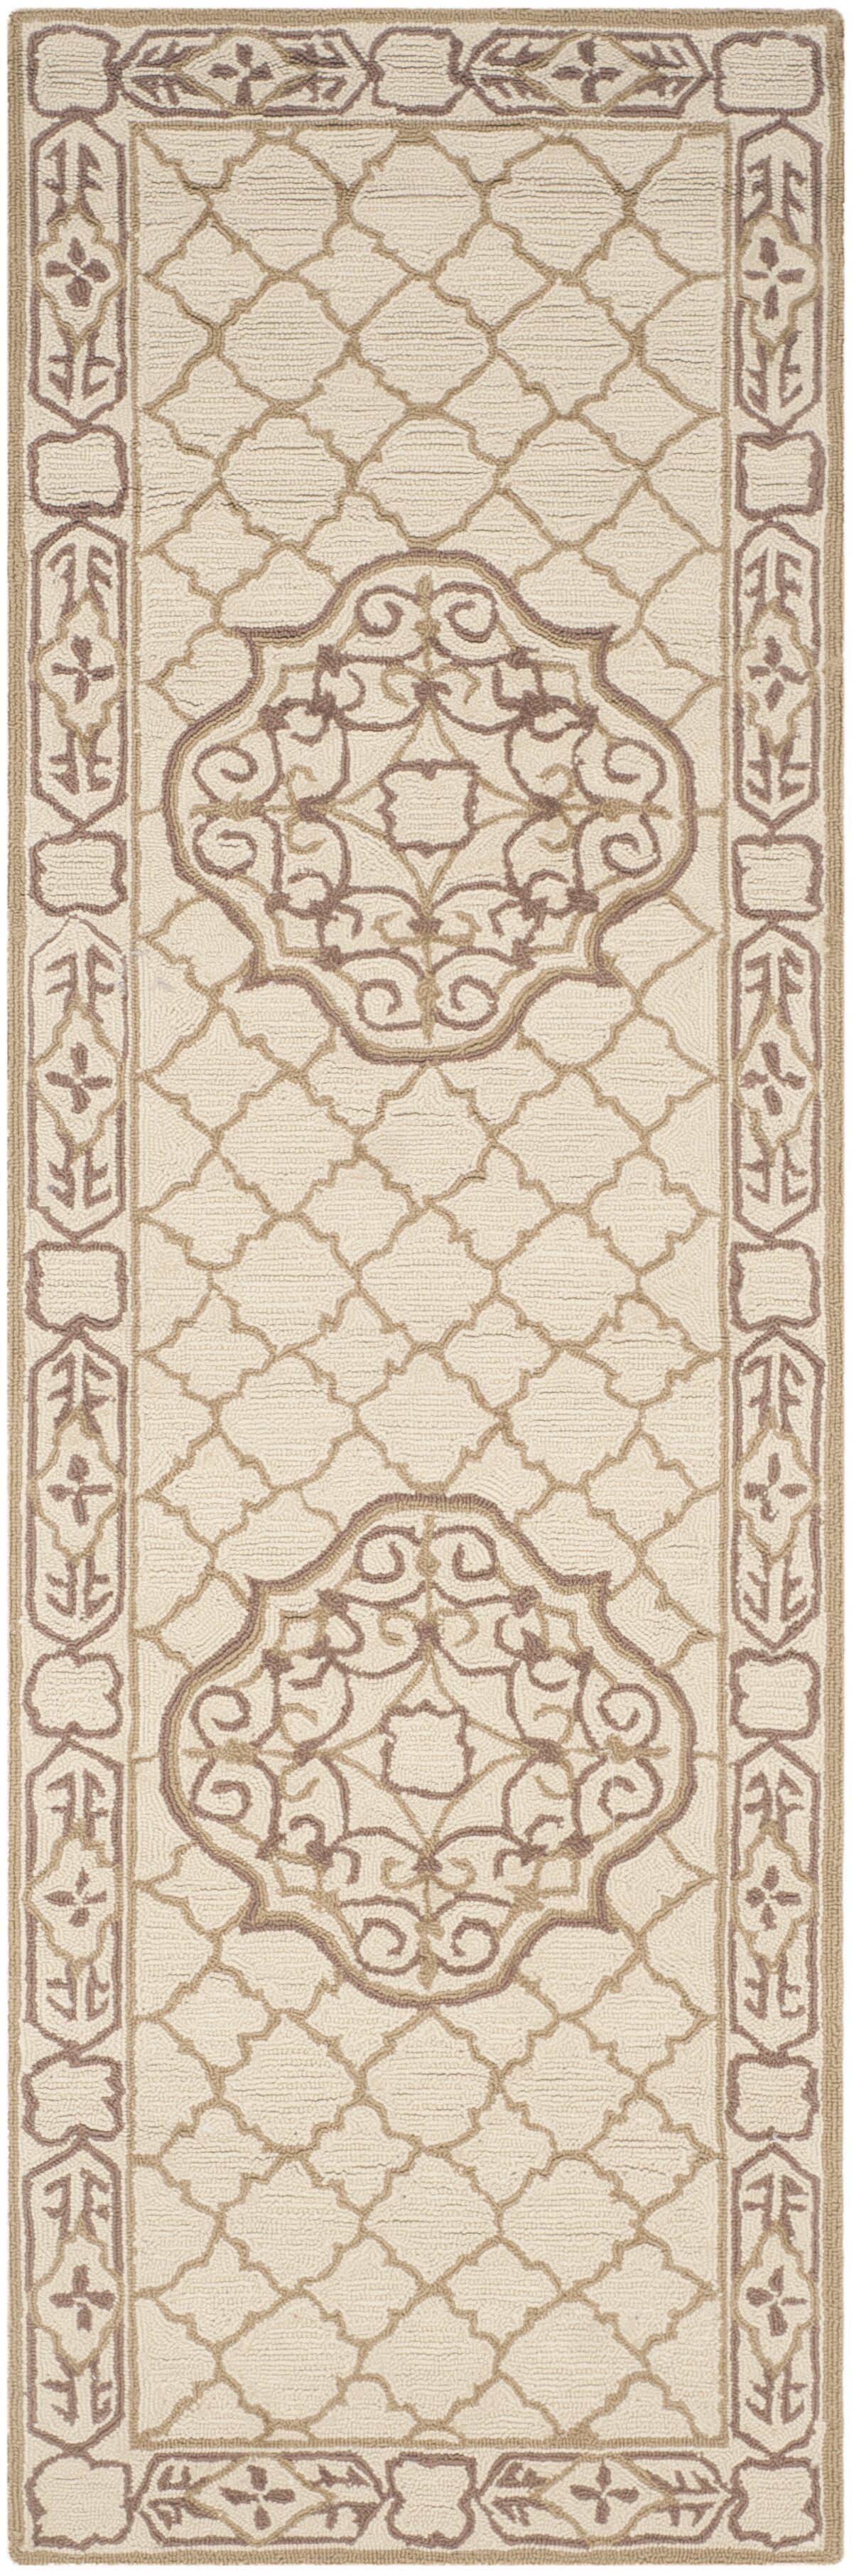 Apache Hand-Hooked Ivory & Gold Area Rug Rug Size: Runner 2'6